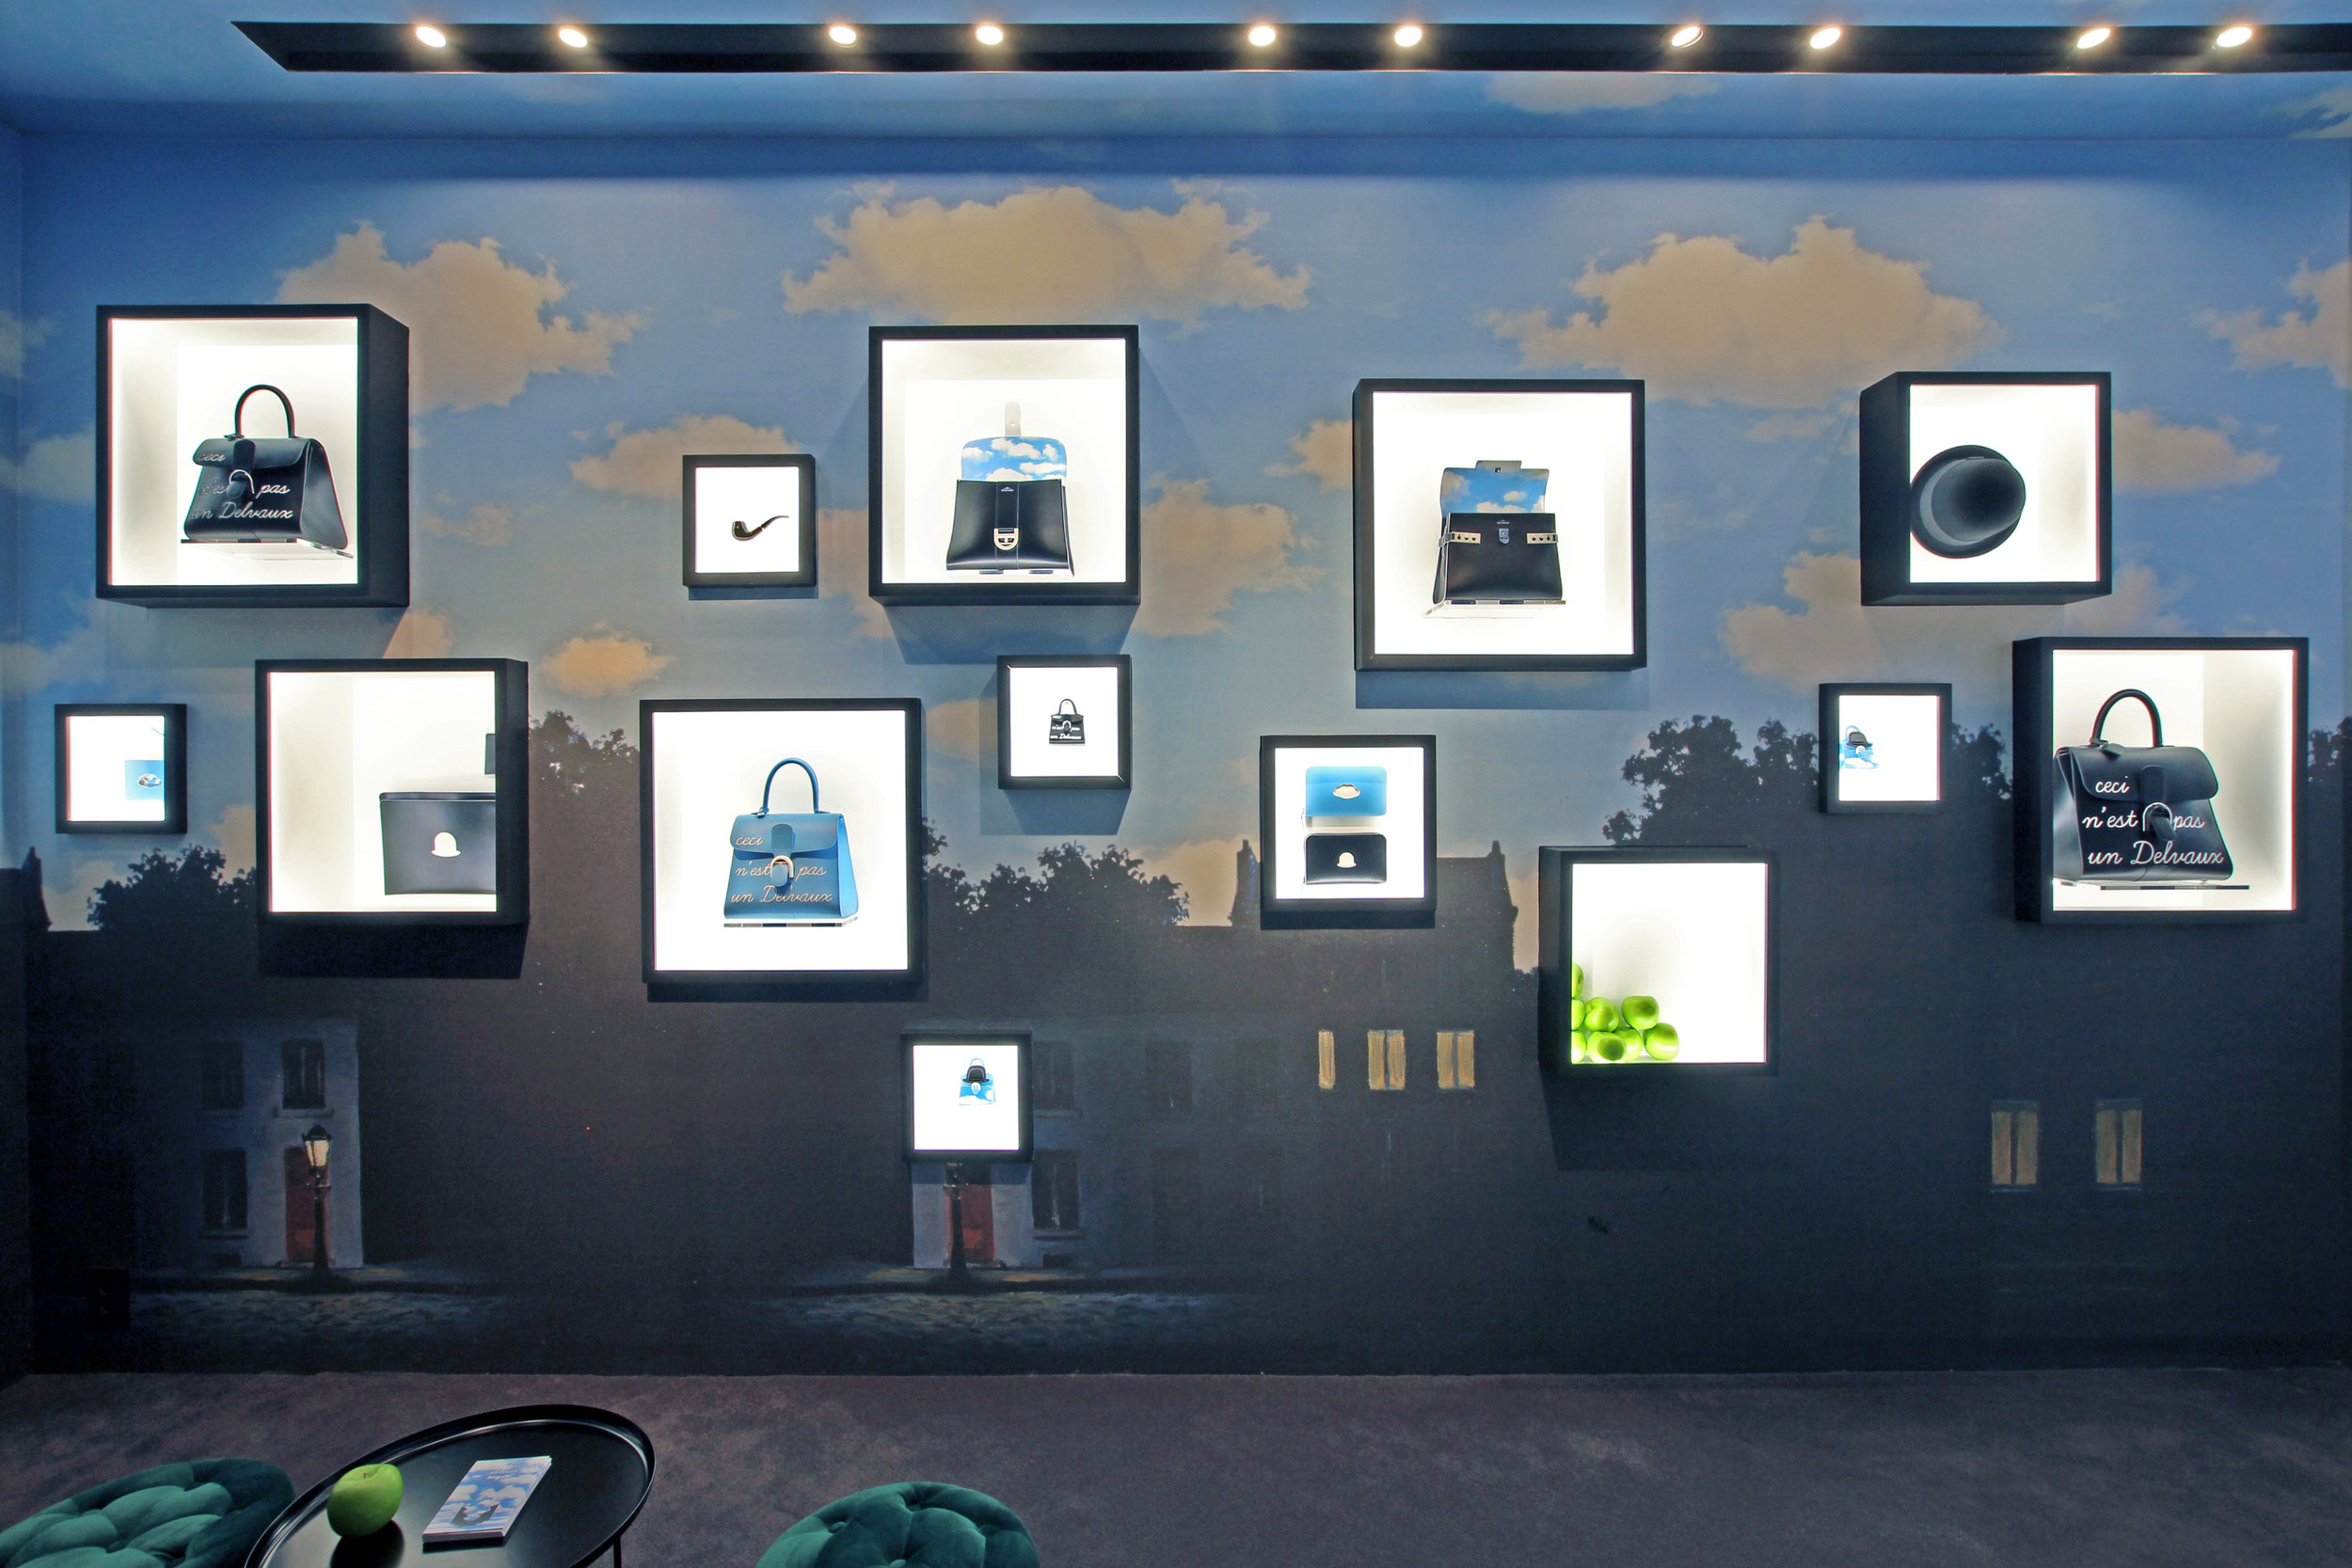 delvaux magritte pop-up store in seoul